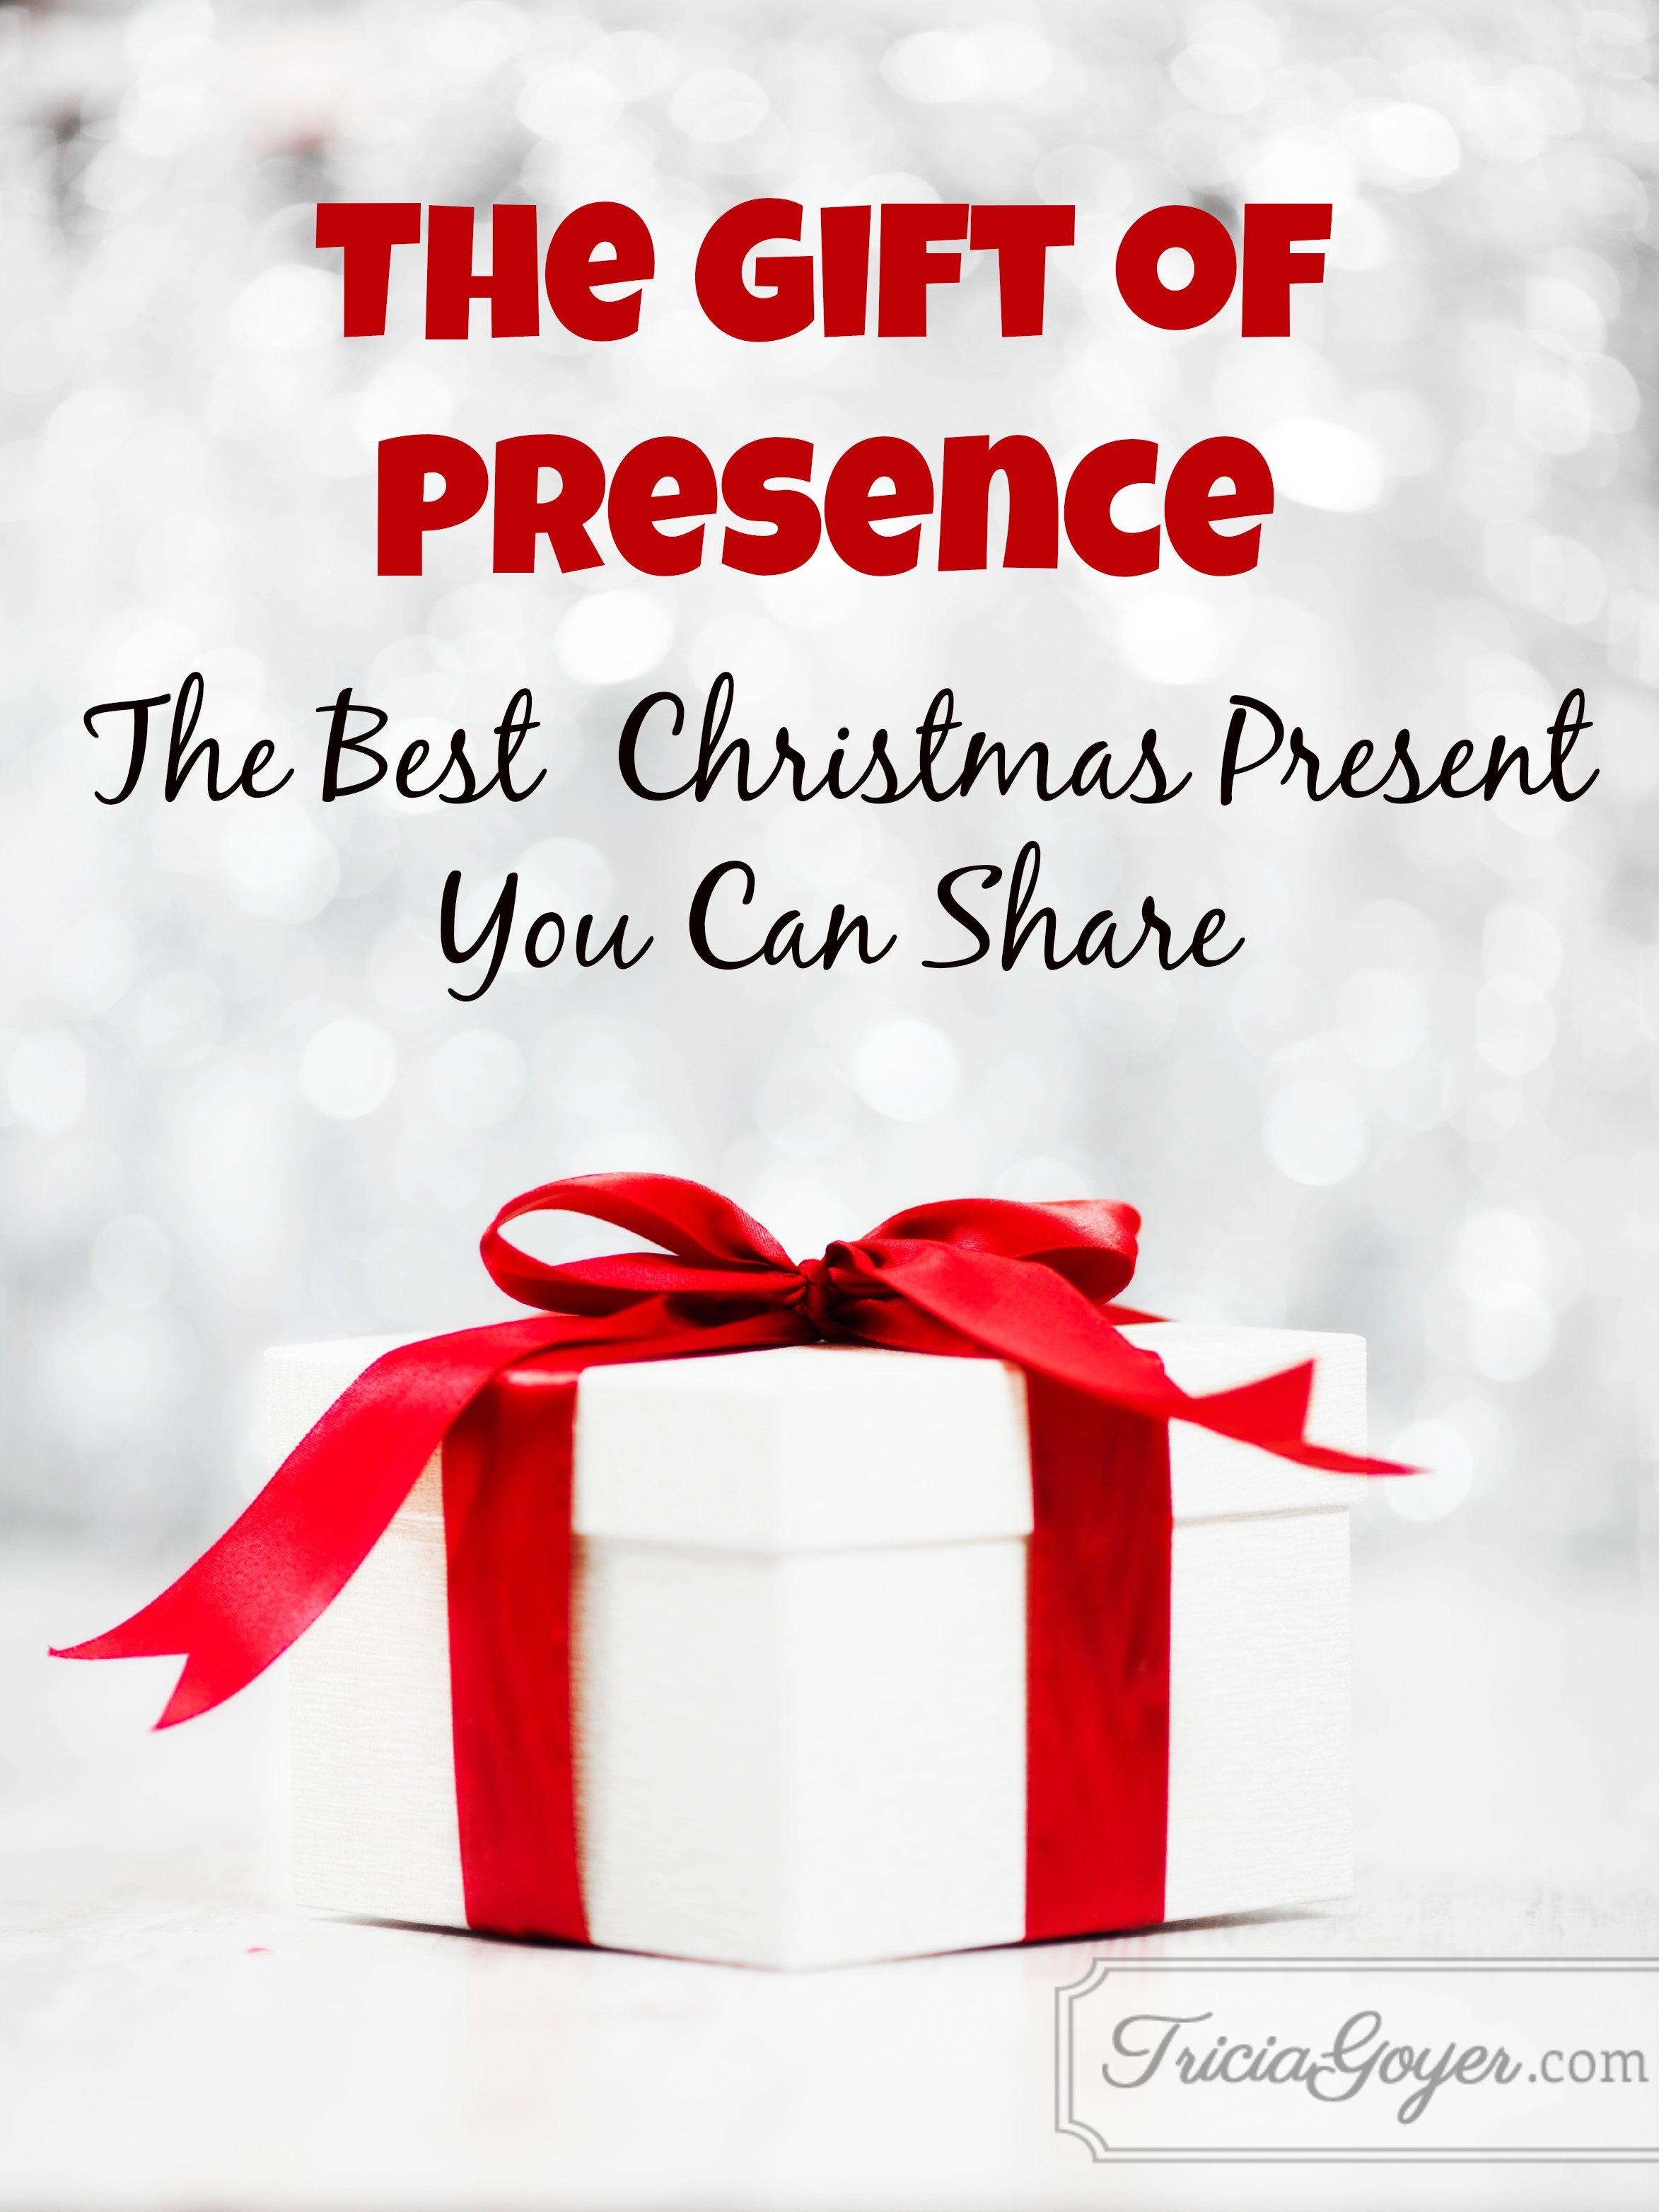 The Gift of Presence | The Best Christmas Present You Can Share